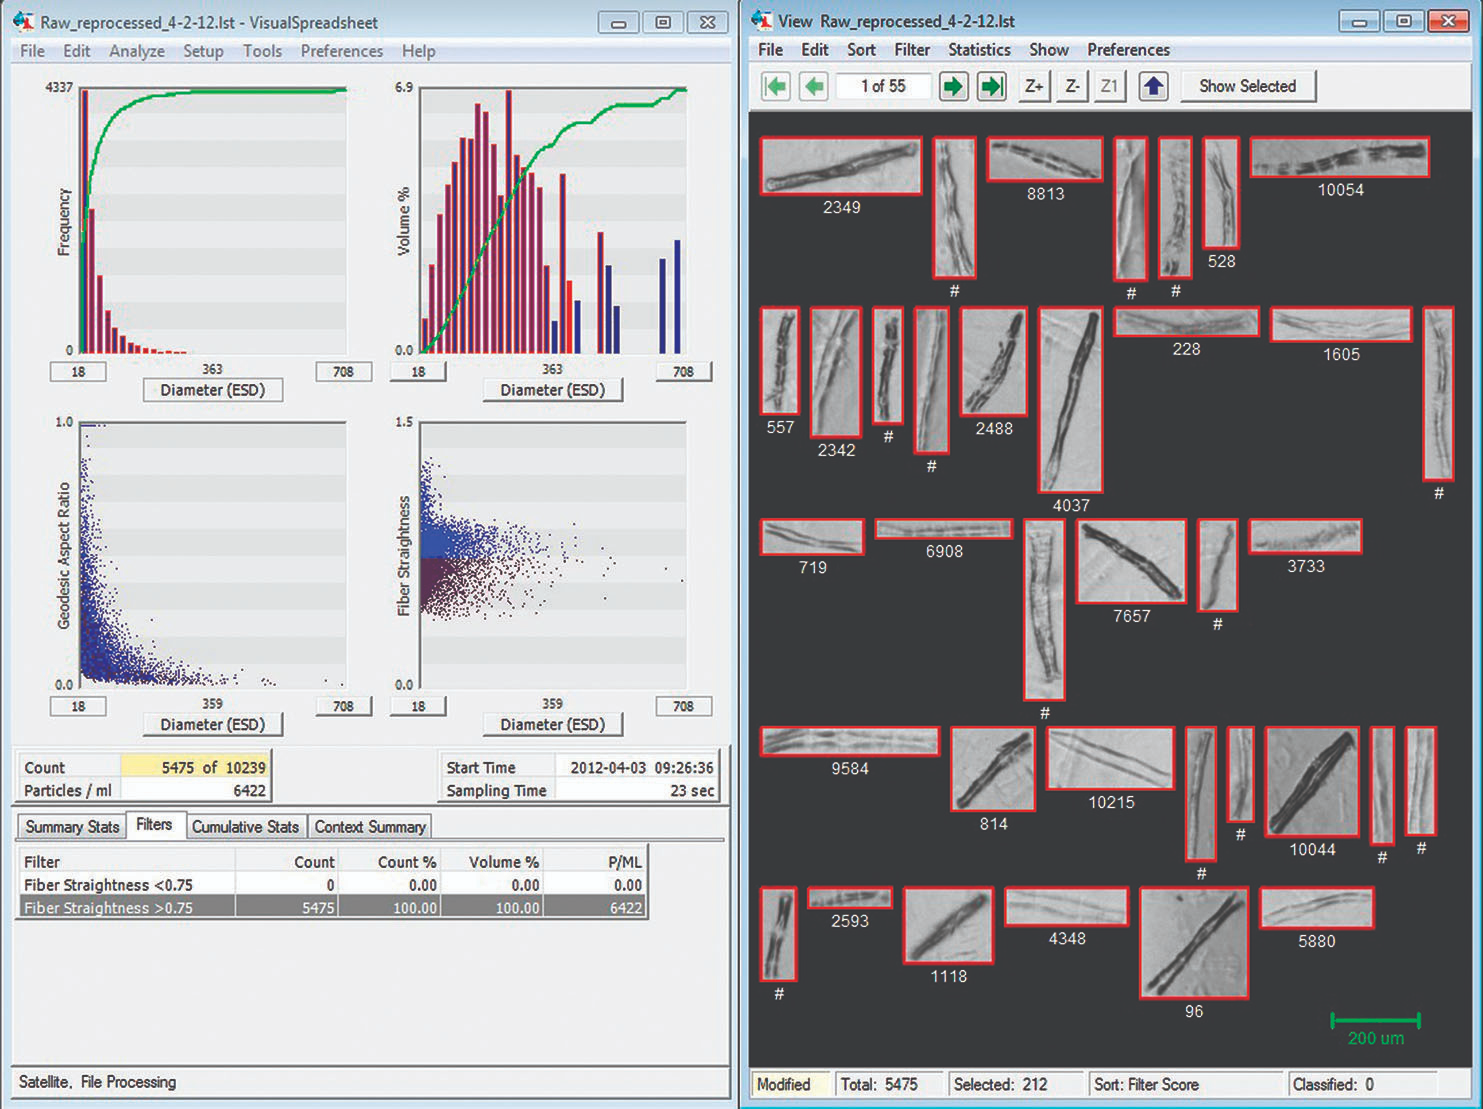 Screenshot of FlowCam analysis of fibers, with images on right representing those with Fiber Straightness >0.75.